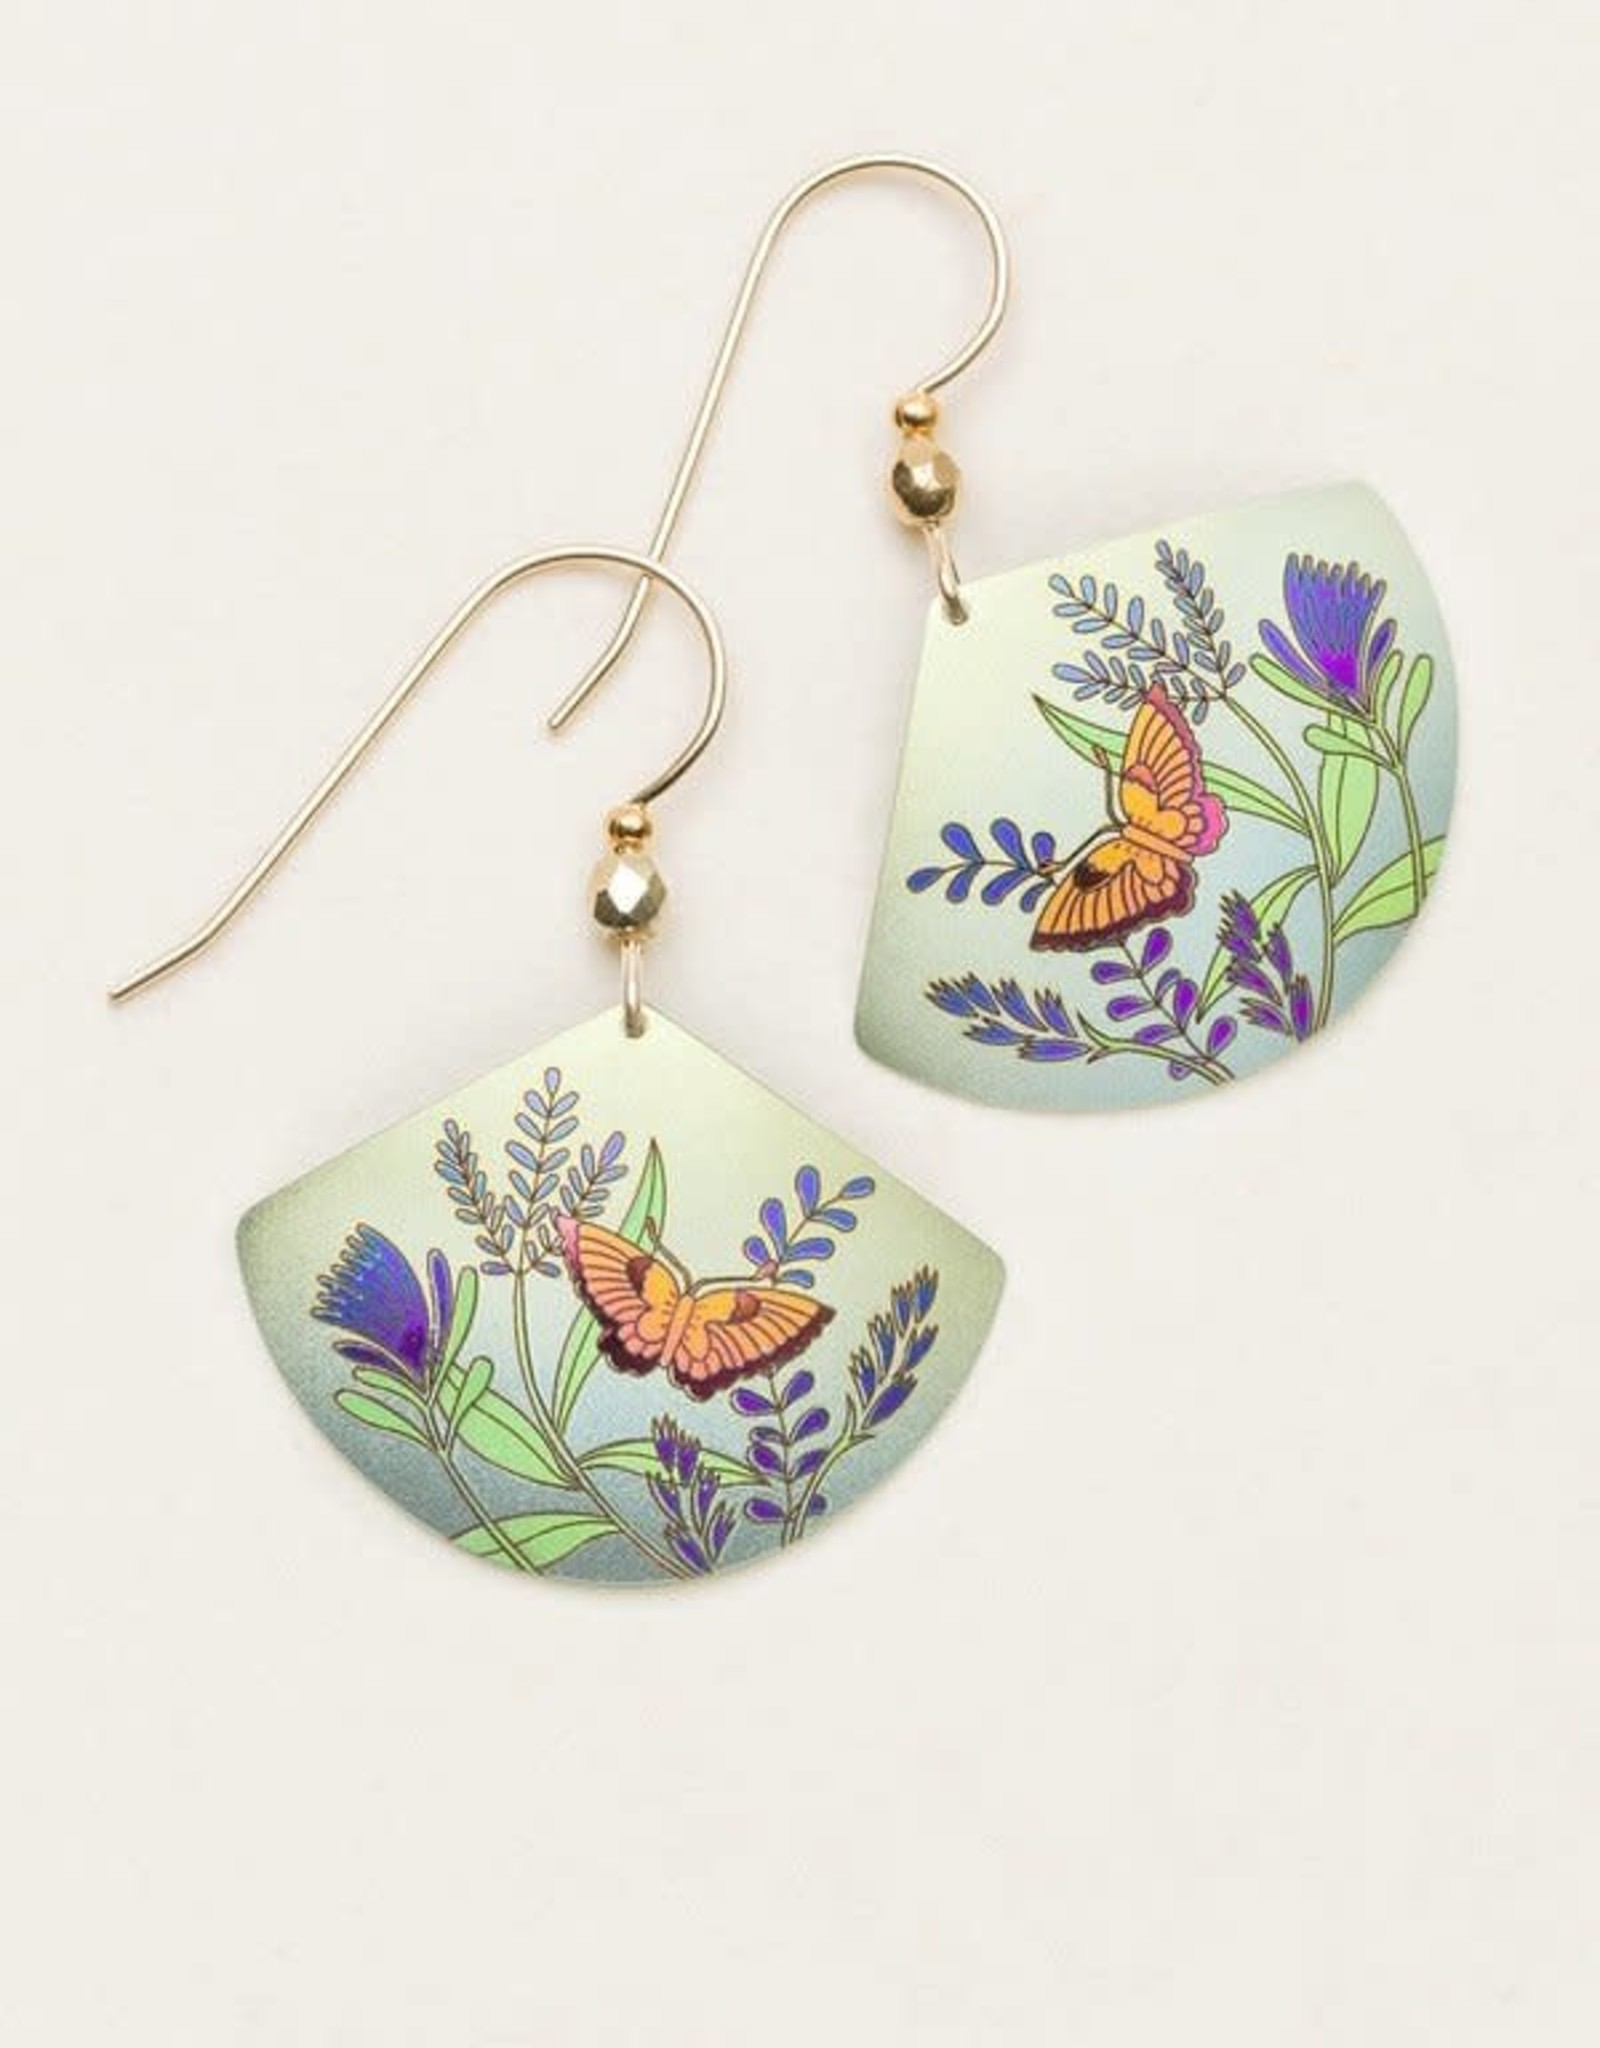 Holly Yashi Sage Garden Whimsy Earrings